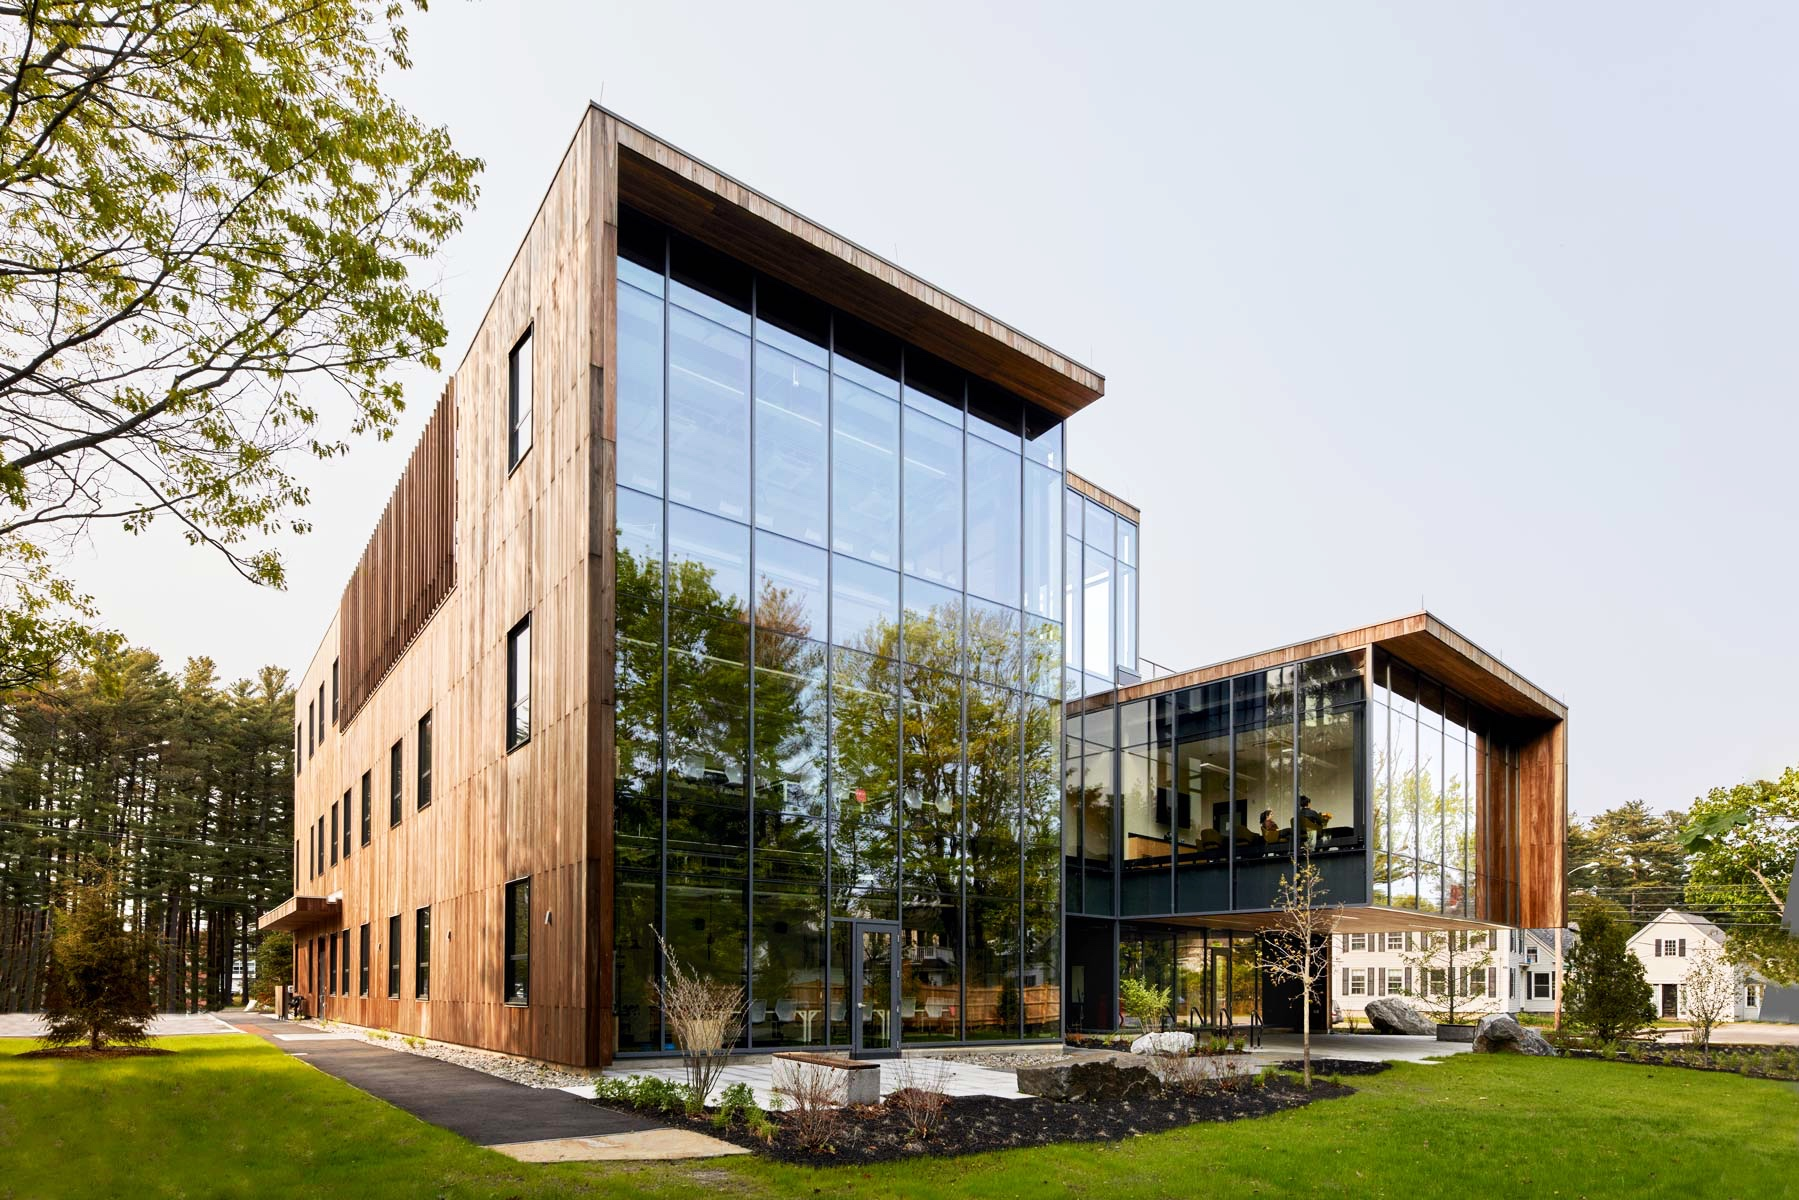 Located at the corner of Harpswell Road and College Street, the Roux Center for the Environment is Bowdoin College's newest, greenest building.